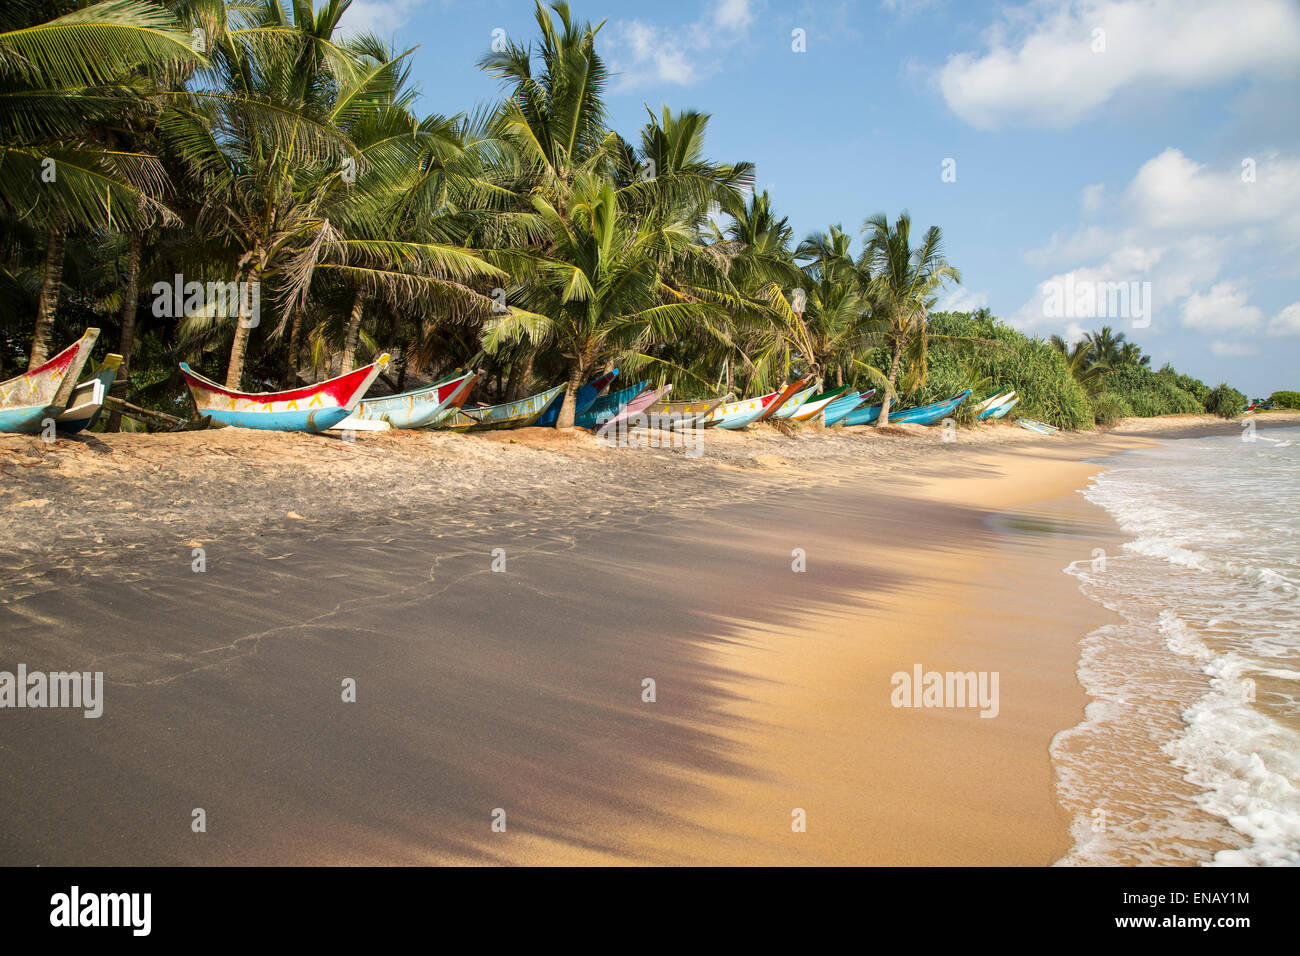 Brightly coloured fishing canoes under coconut palm trees of tropical sandy beach, Mirissa, Sri Lanka, Asia - Stock Image